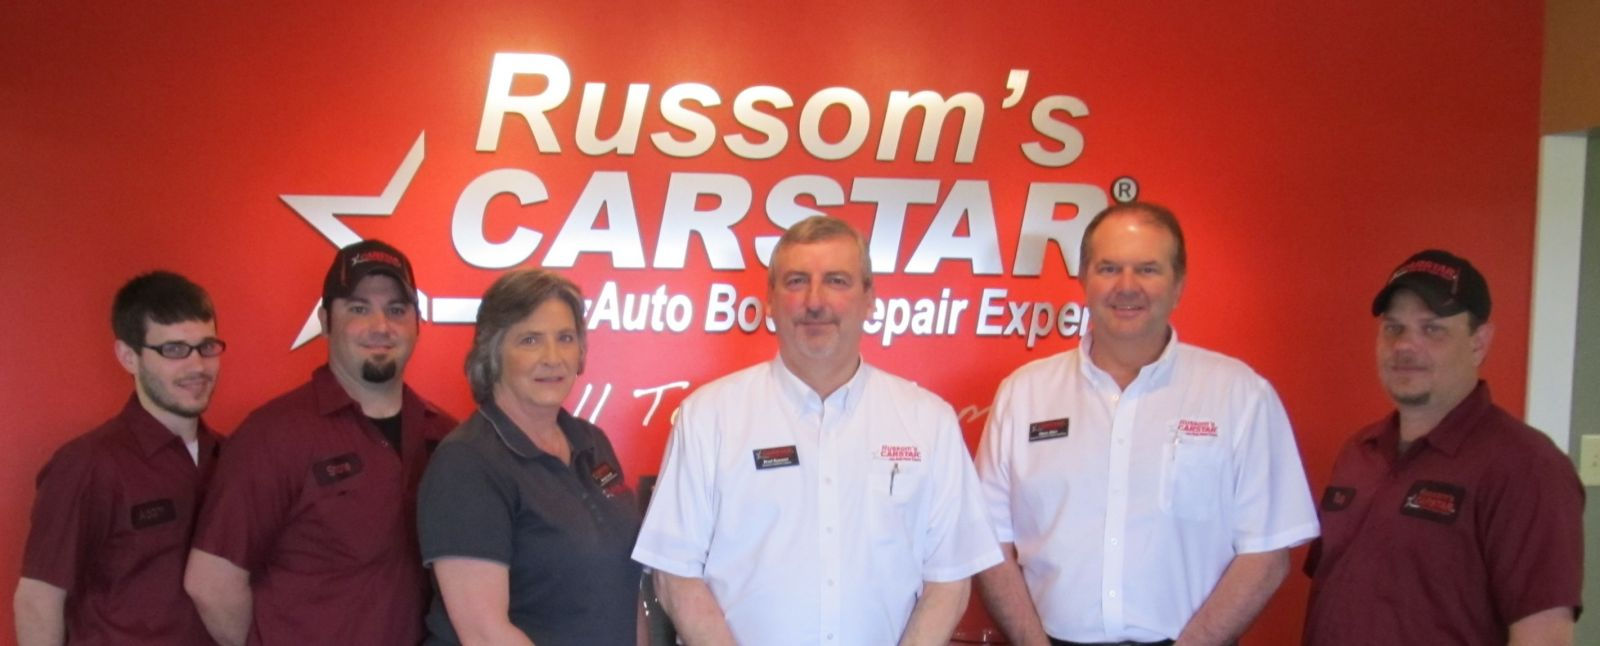 Russom's CARSTAR: Meet the Team